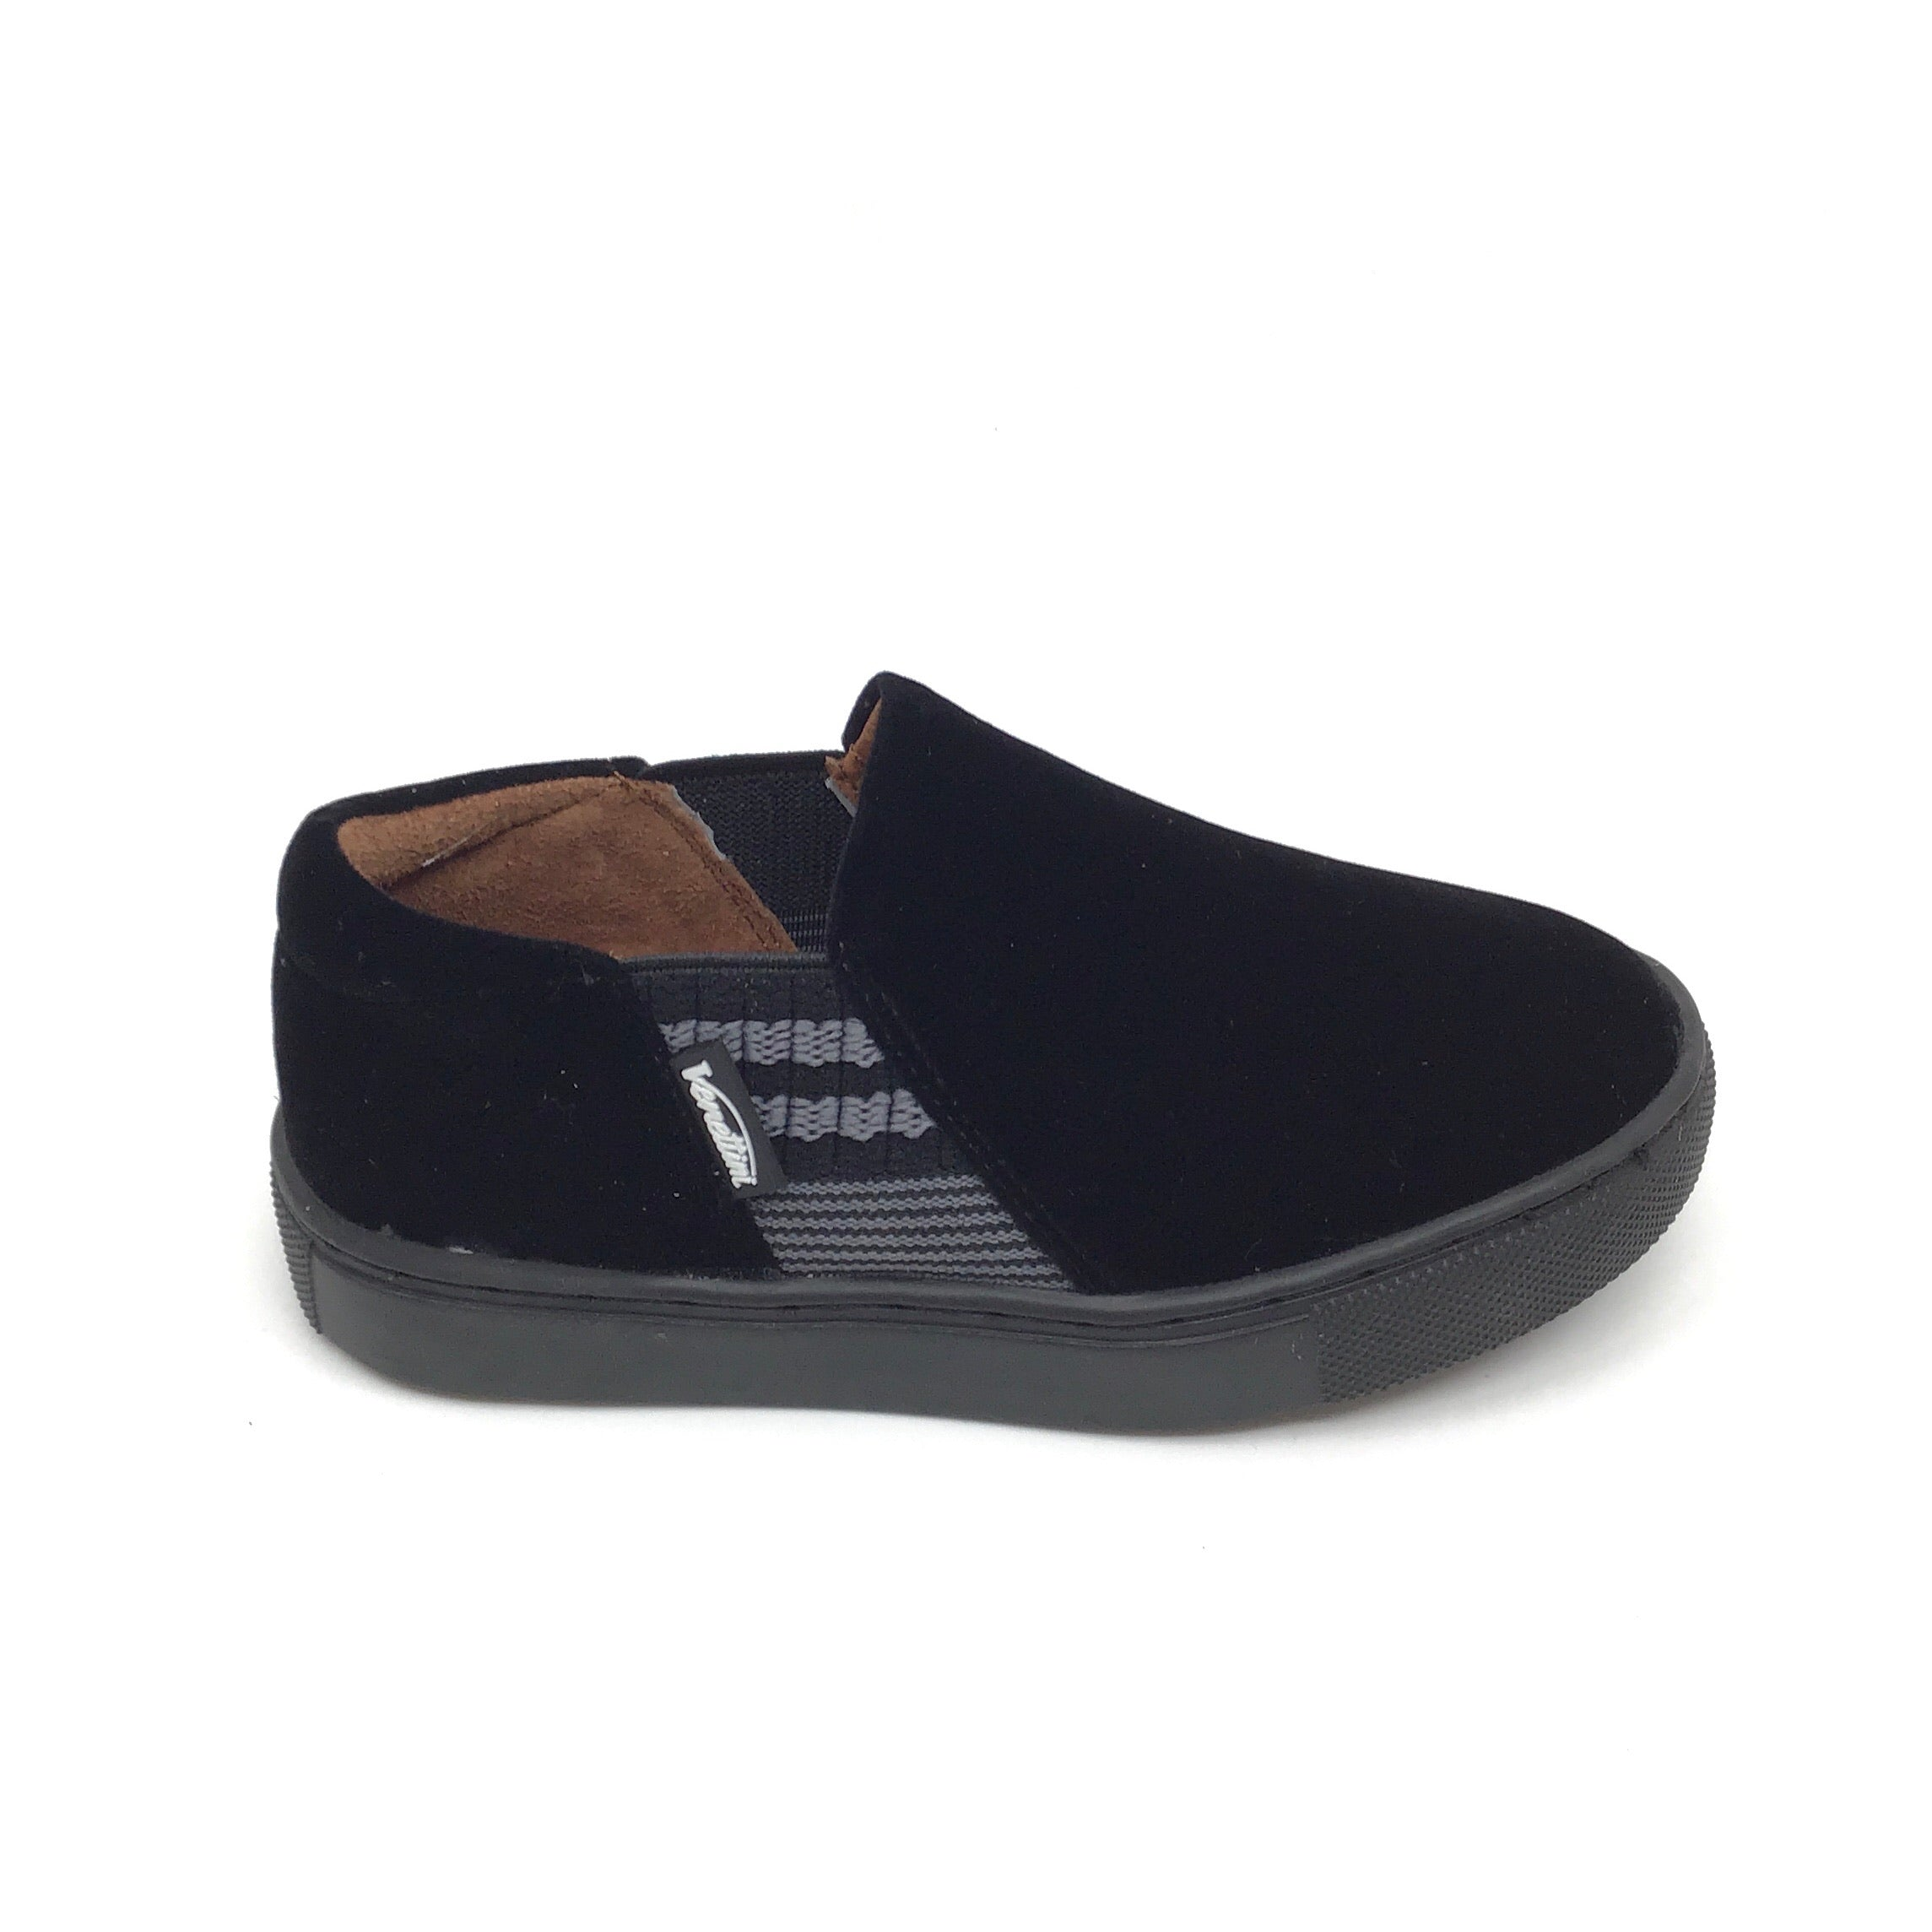 Venettini Black Velvet Elastic Slip On